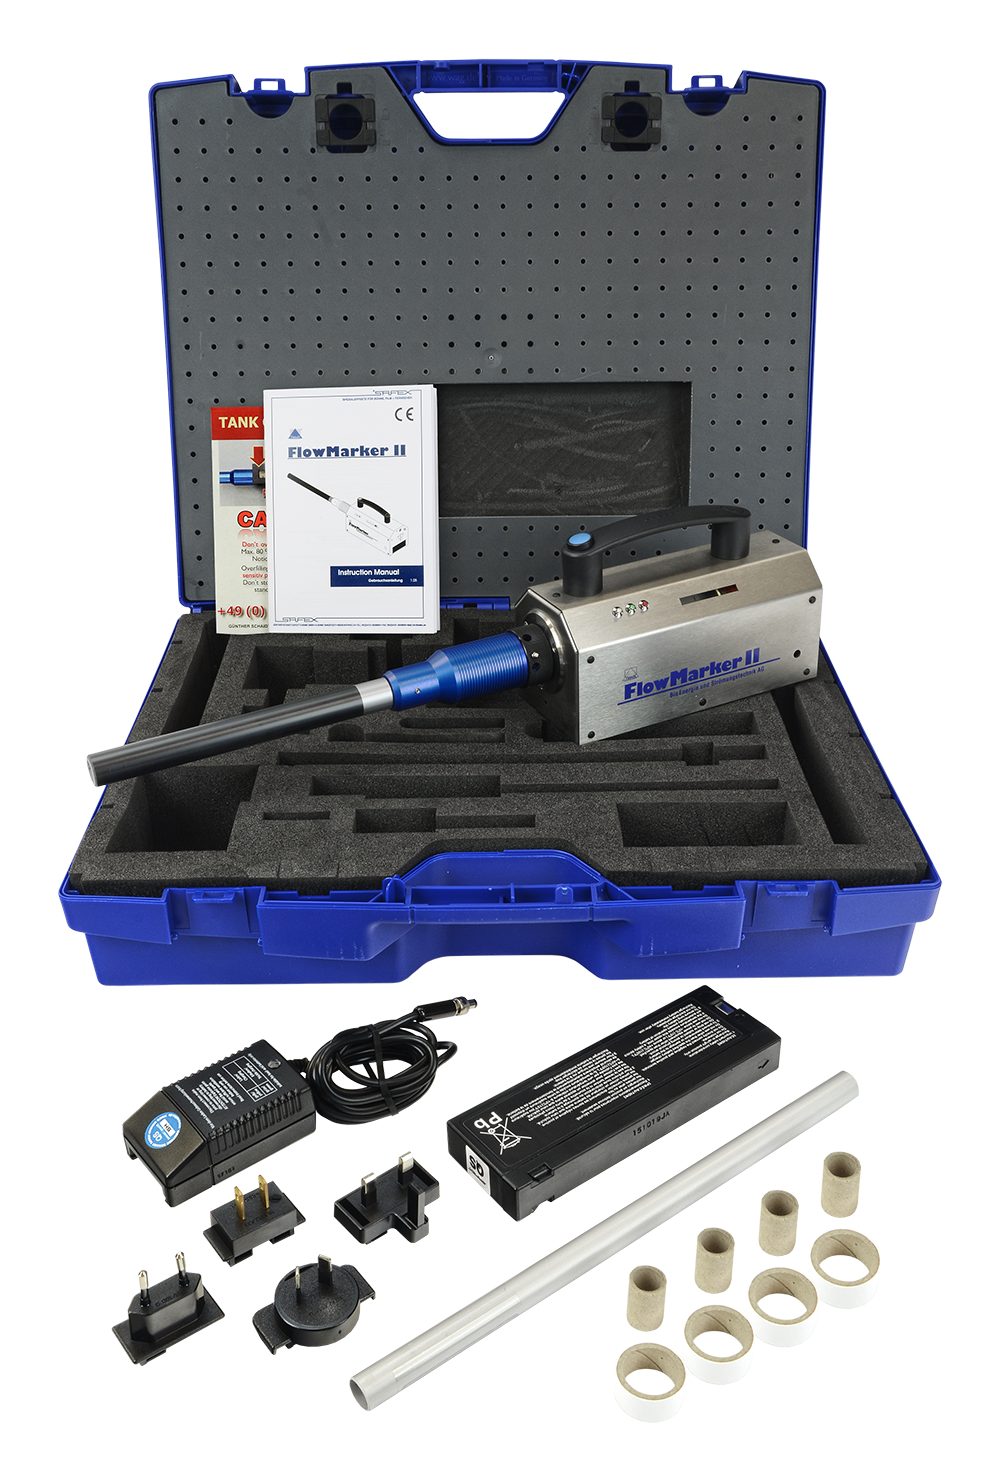 FlowMarker smoke wand kit with everything you need to get started with smoke wand tests.